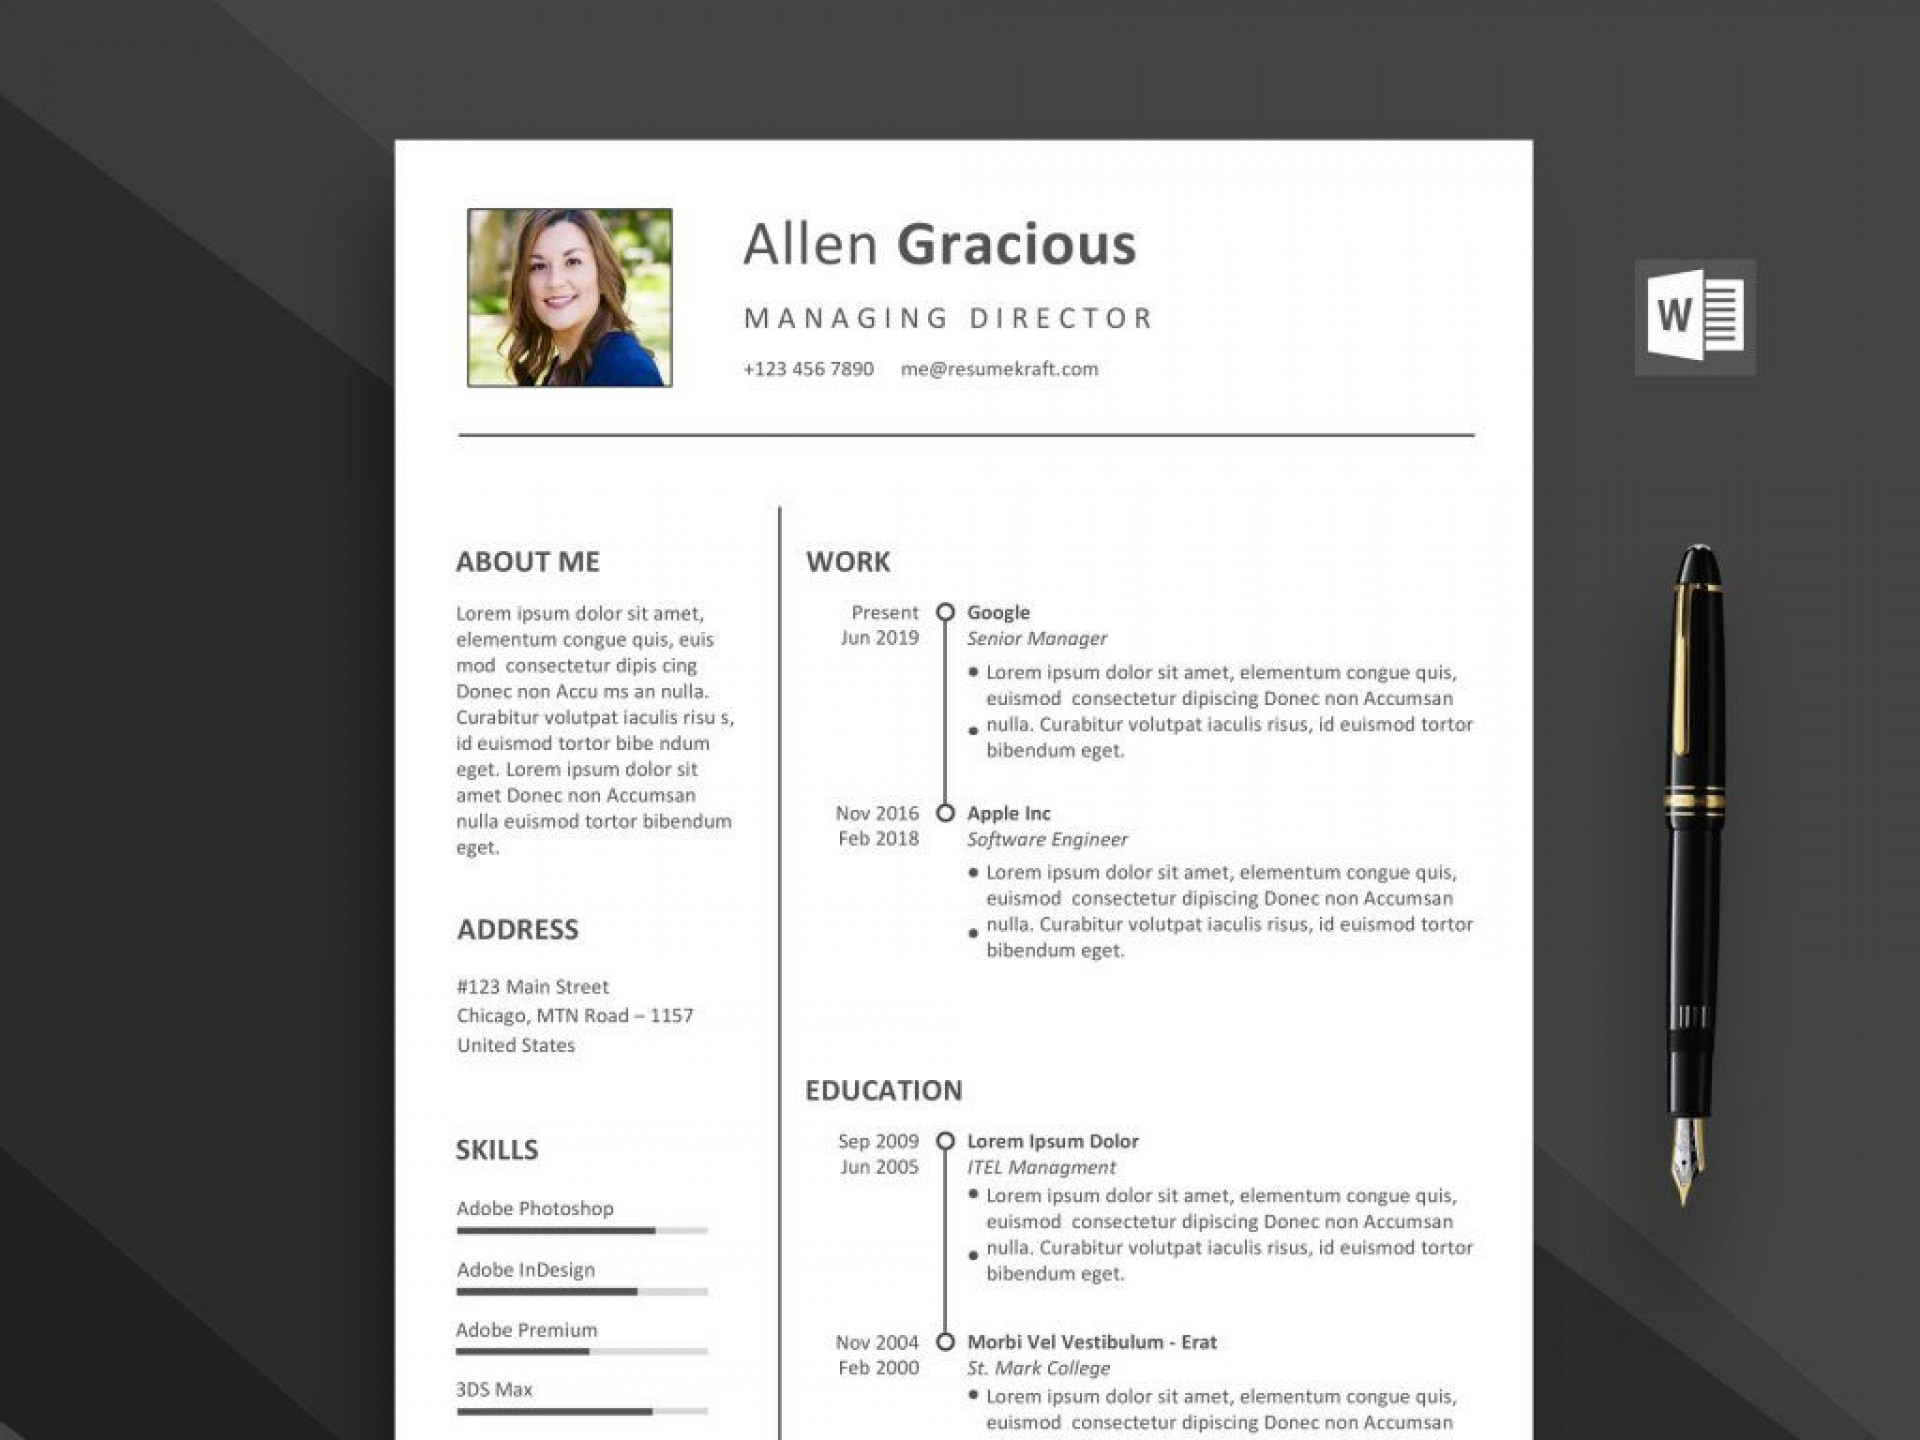 000 Breathtaking Resume Template Download Word Highest Quality  Cv Free 2018 2007 Document For Fresher1920